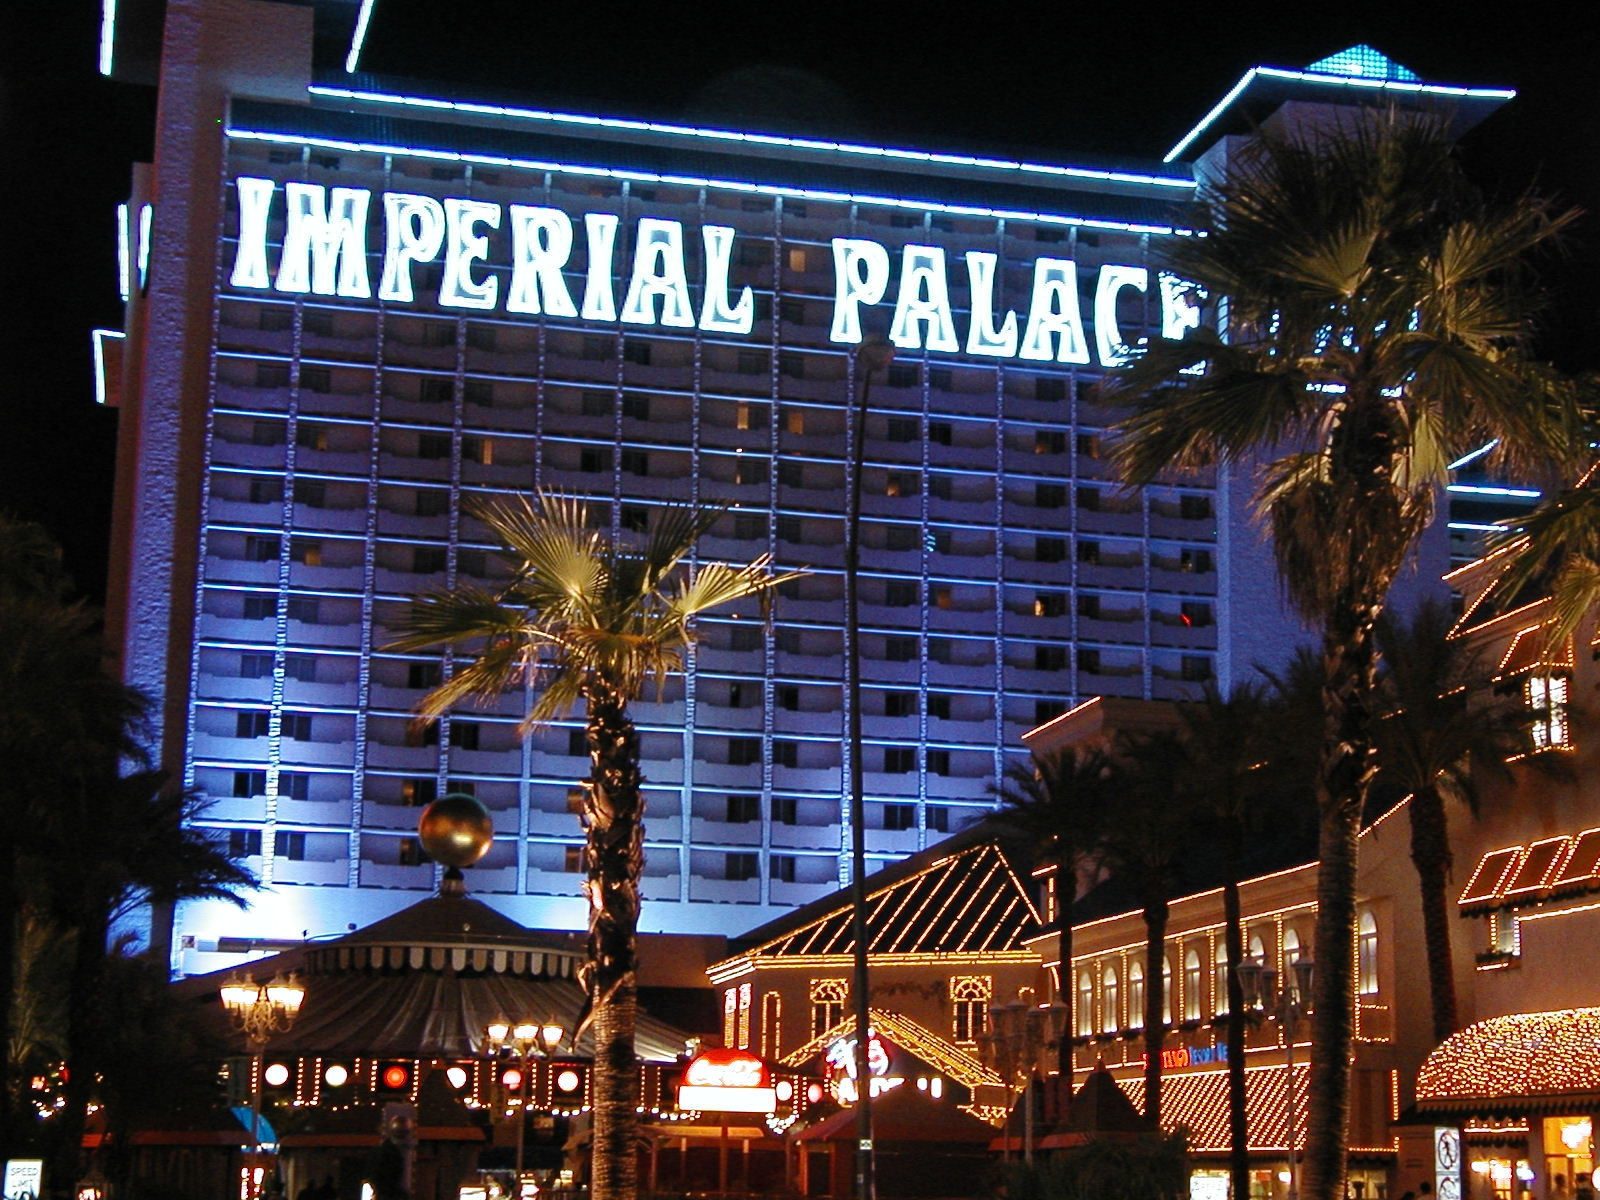 hotels in las vegas strip map with Imperial Palace on Las Vegas Hotels Desert Rose Resort h62860 also Imperial Palace further Rio las vegas additionally Ac casinos map together with Bellagio Las Vegas.